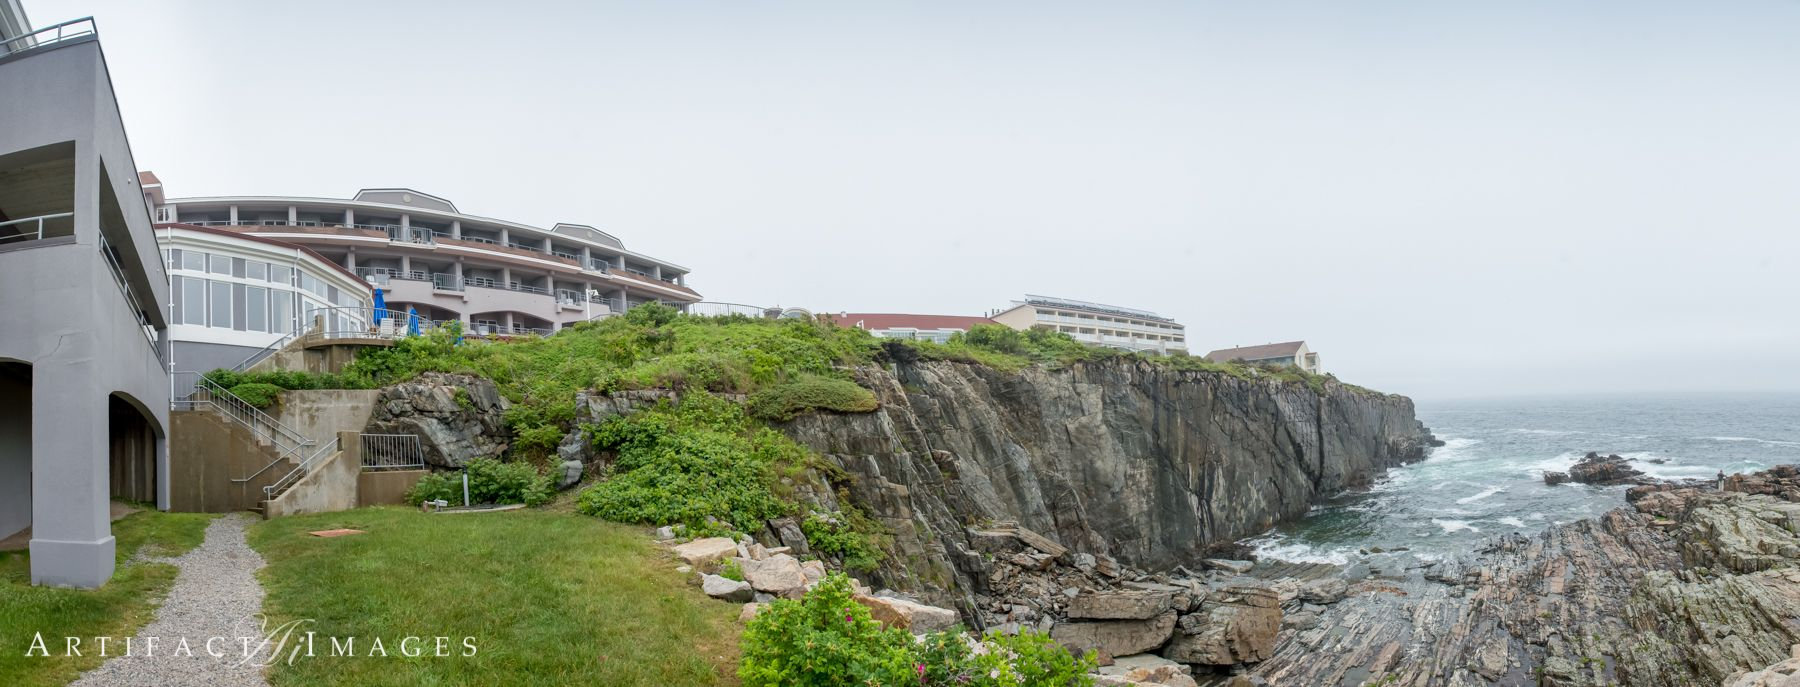 The Cliff House Resort Spa Ogunquit Me By Artifact Images